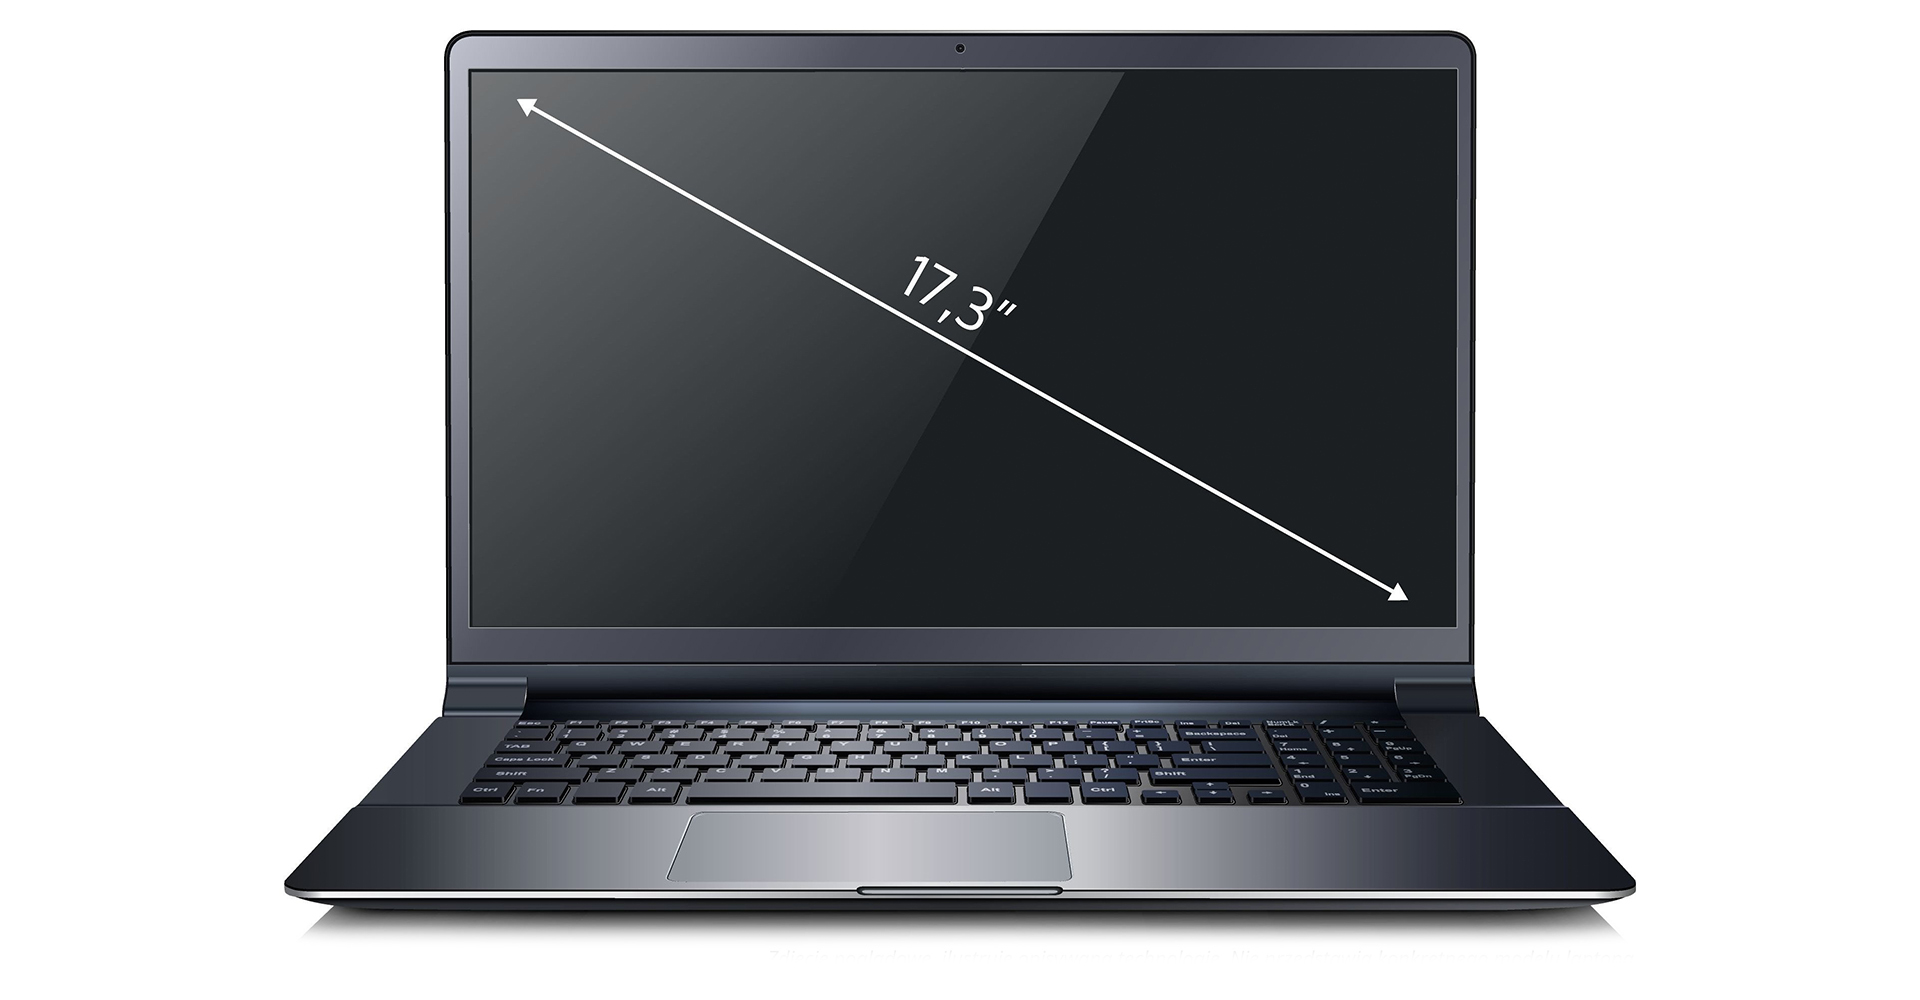 Dell Inspiron 17 5770 i7-8550U 8GB 128GB + 1TB Linux                             17.3 collas pa diagonāli